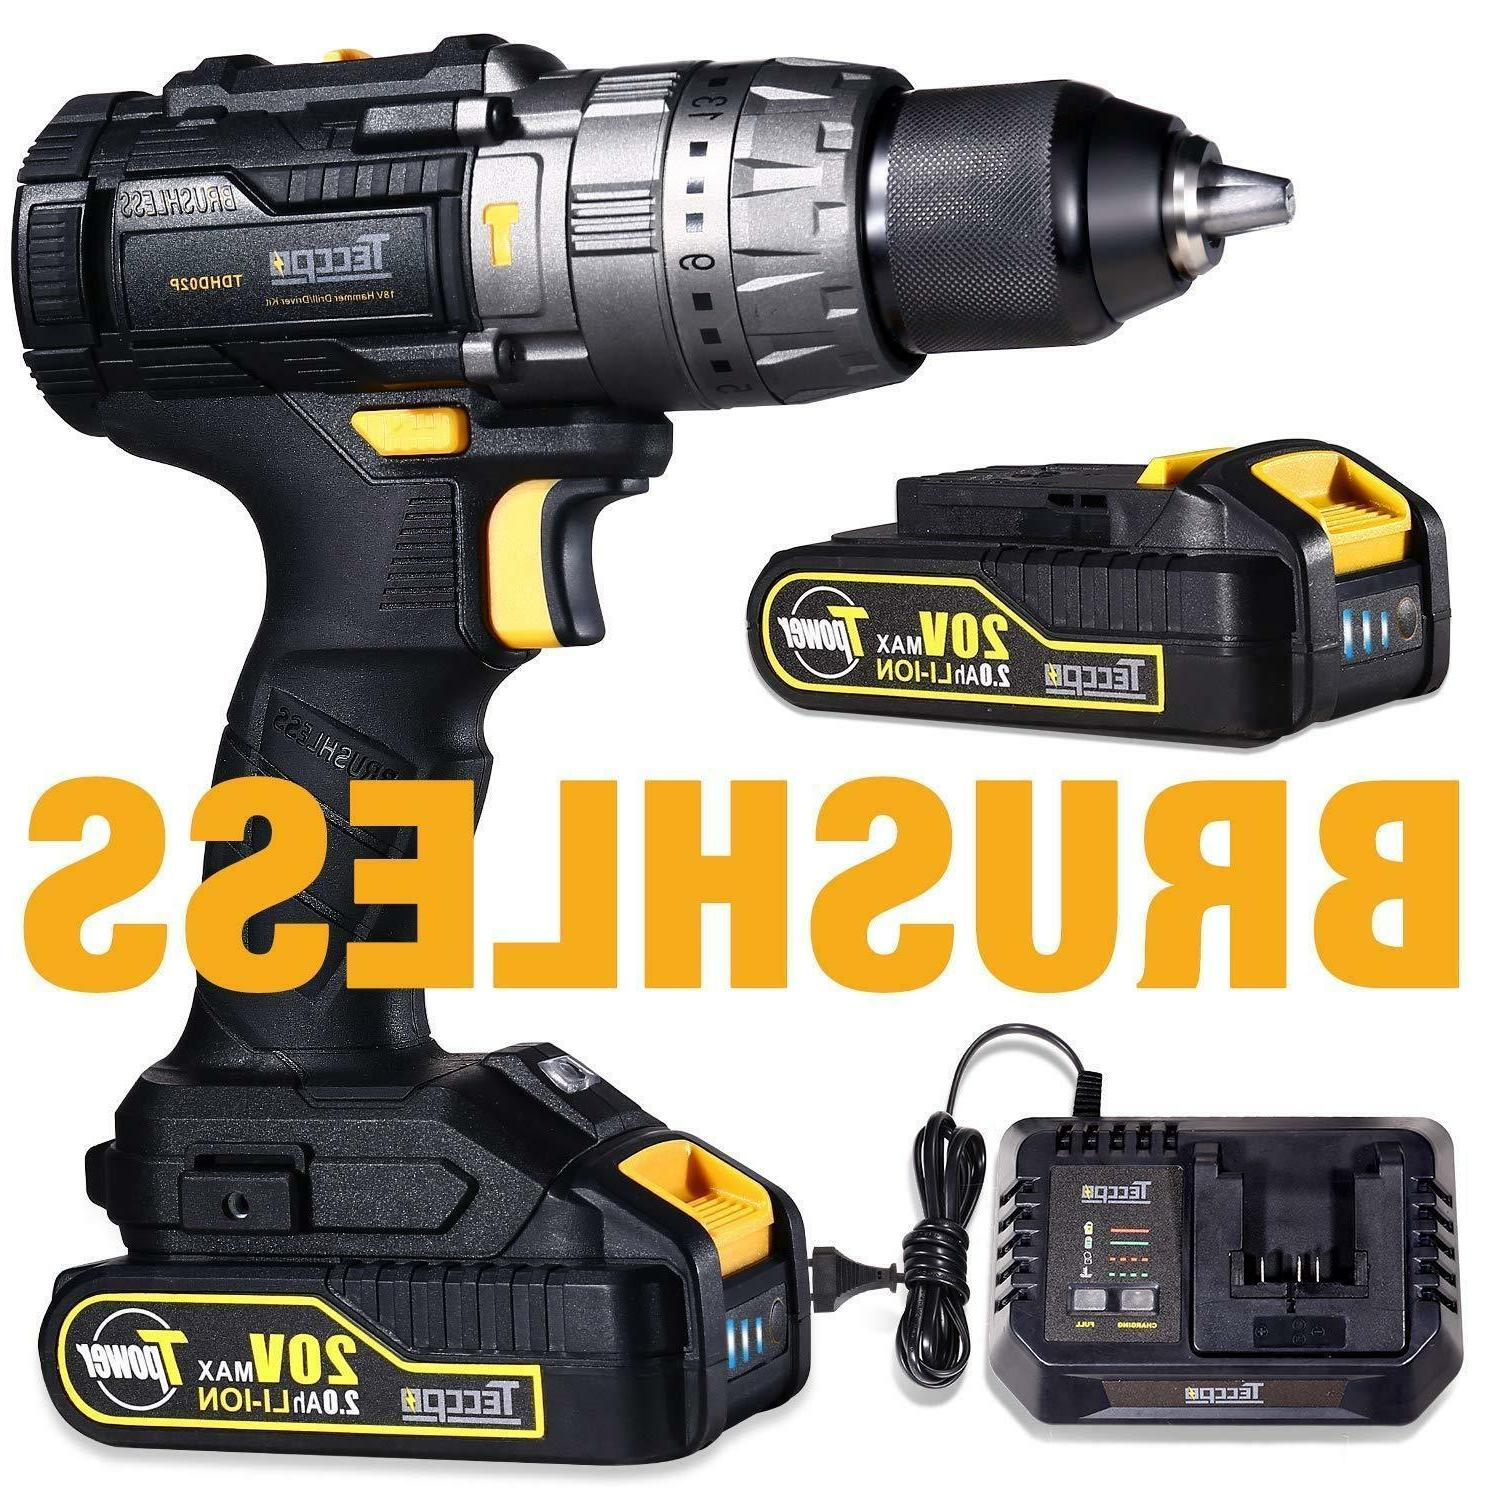 brushless drill driver 20v max cordless drill